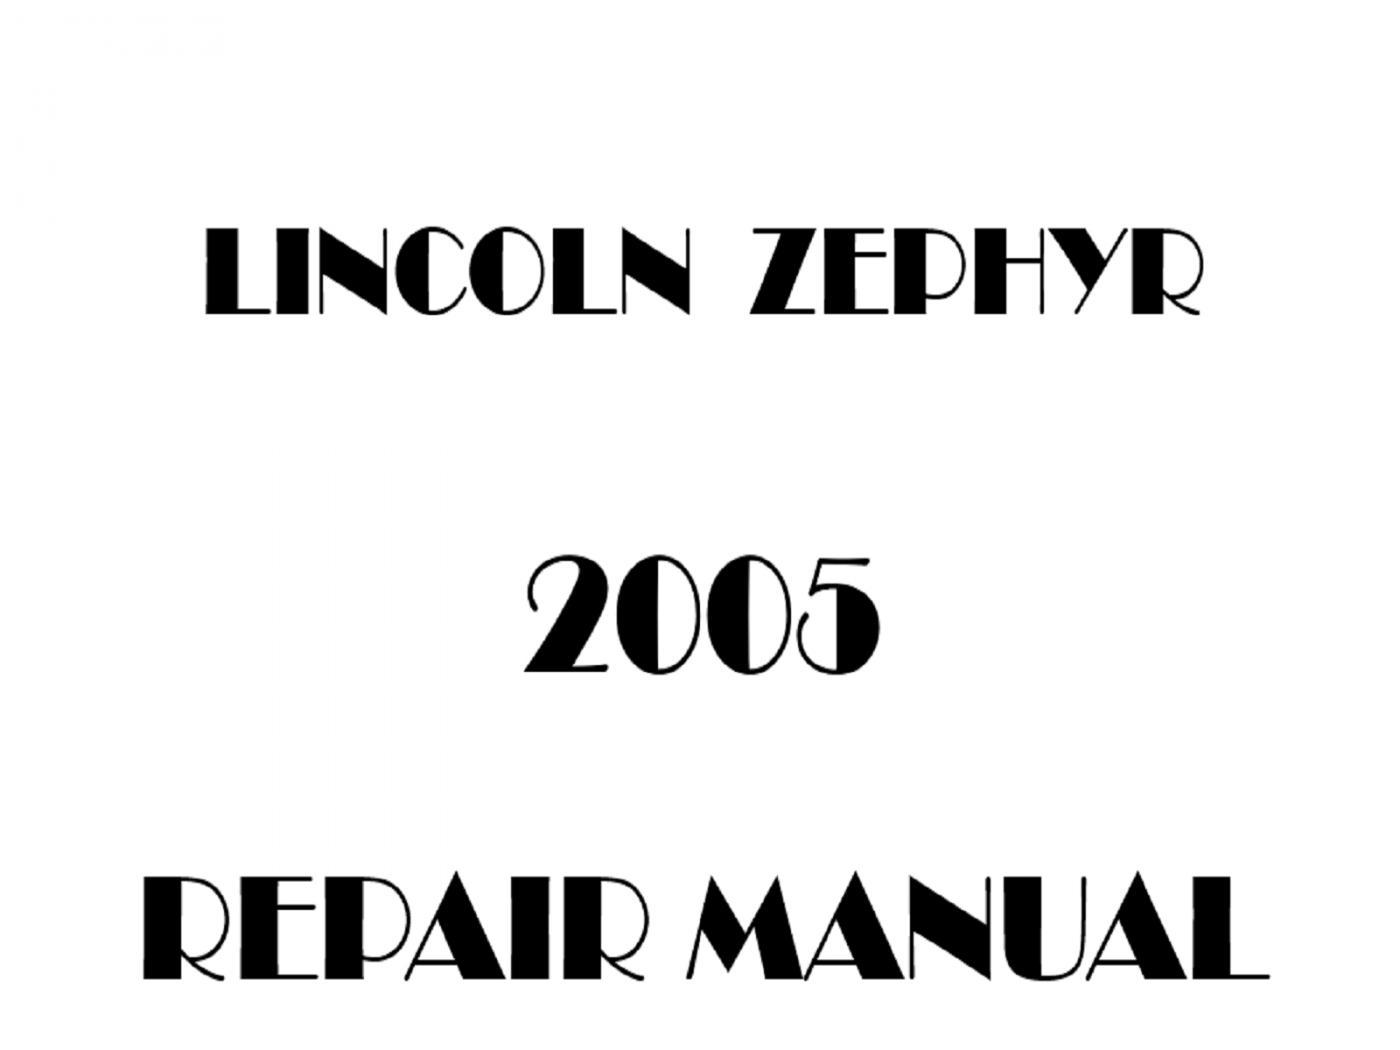 2005 Lincoln Zephyr repair manual